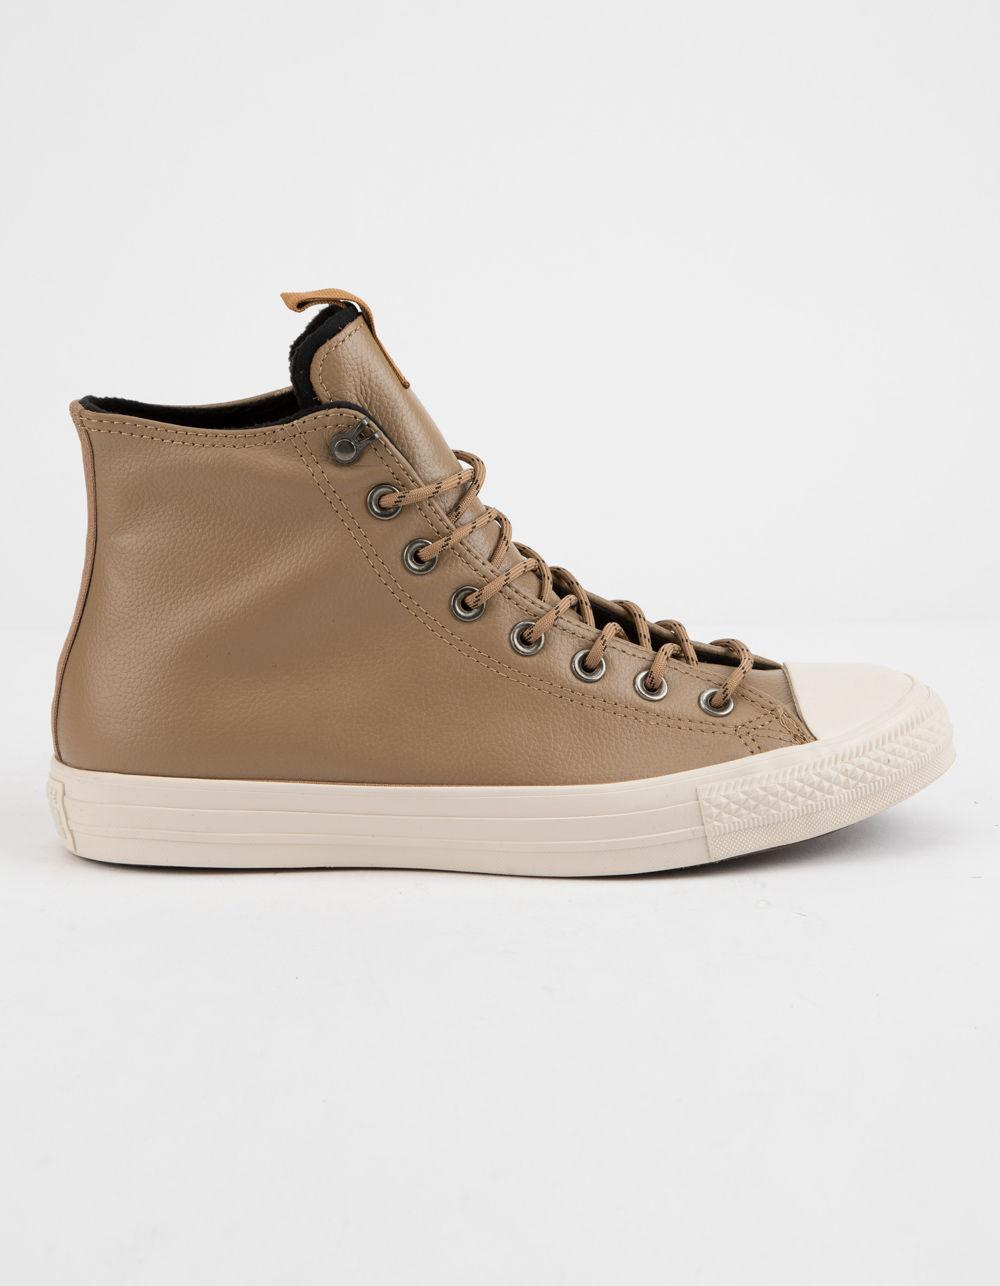 065270b360 Lyst - Converse Chuck Taylor All Star Leather Teak   Driftwood High ...